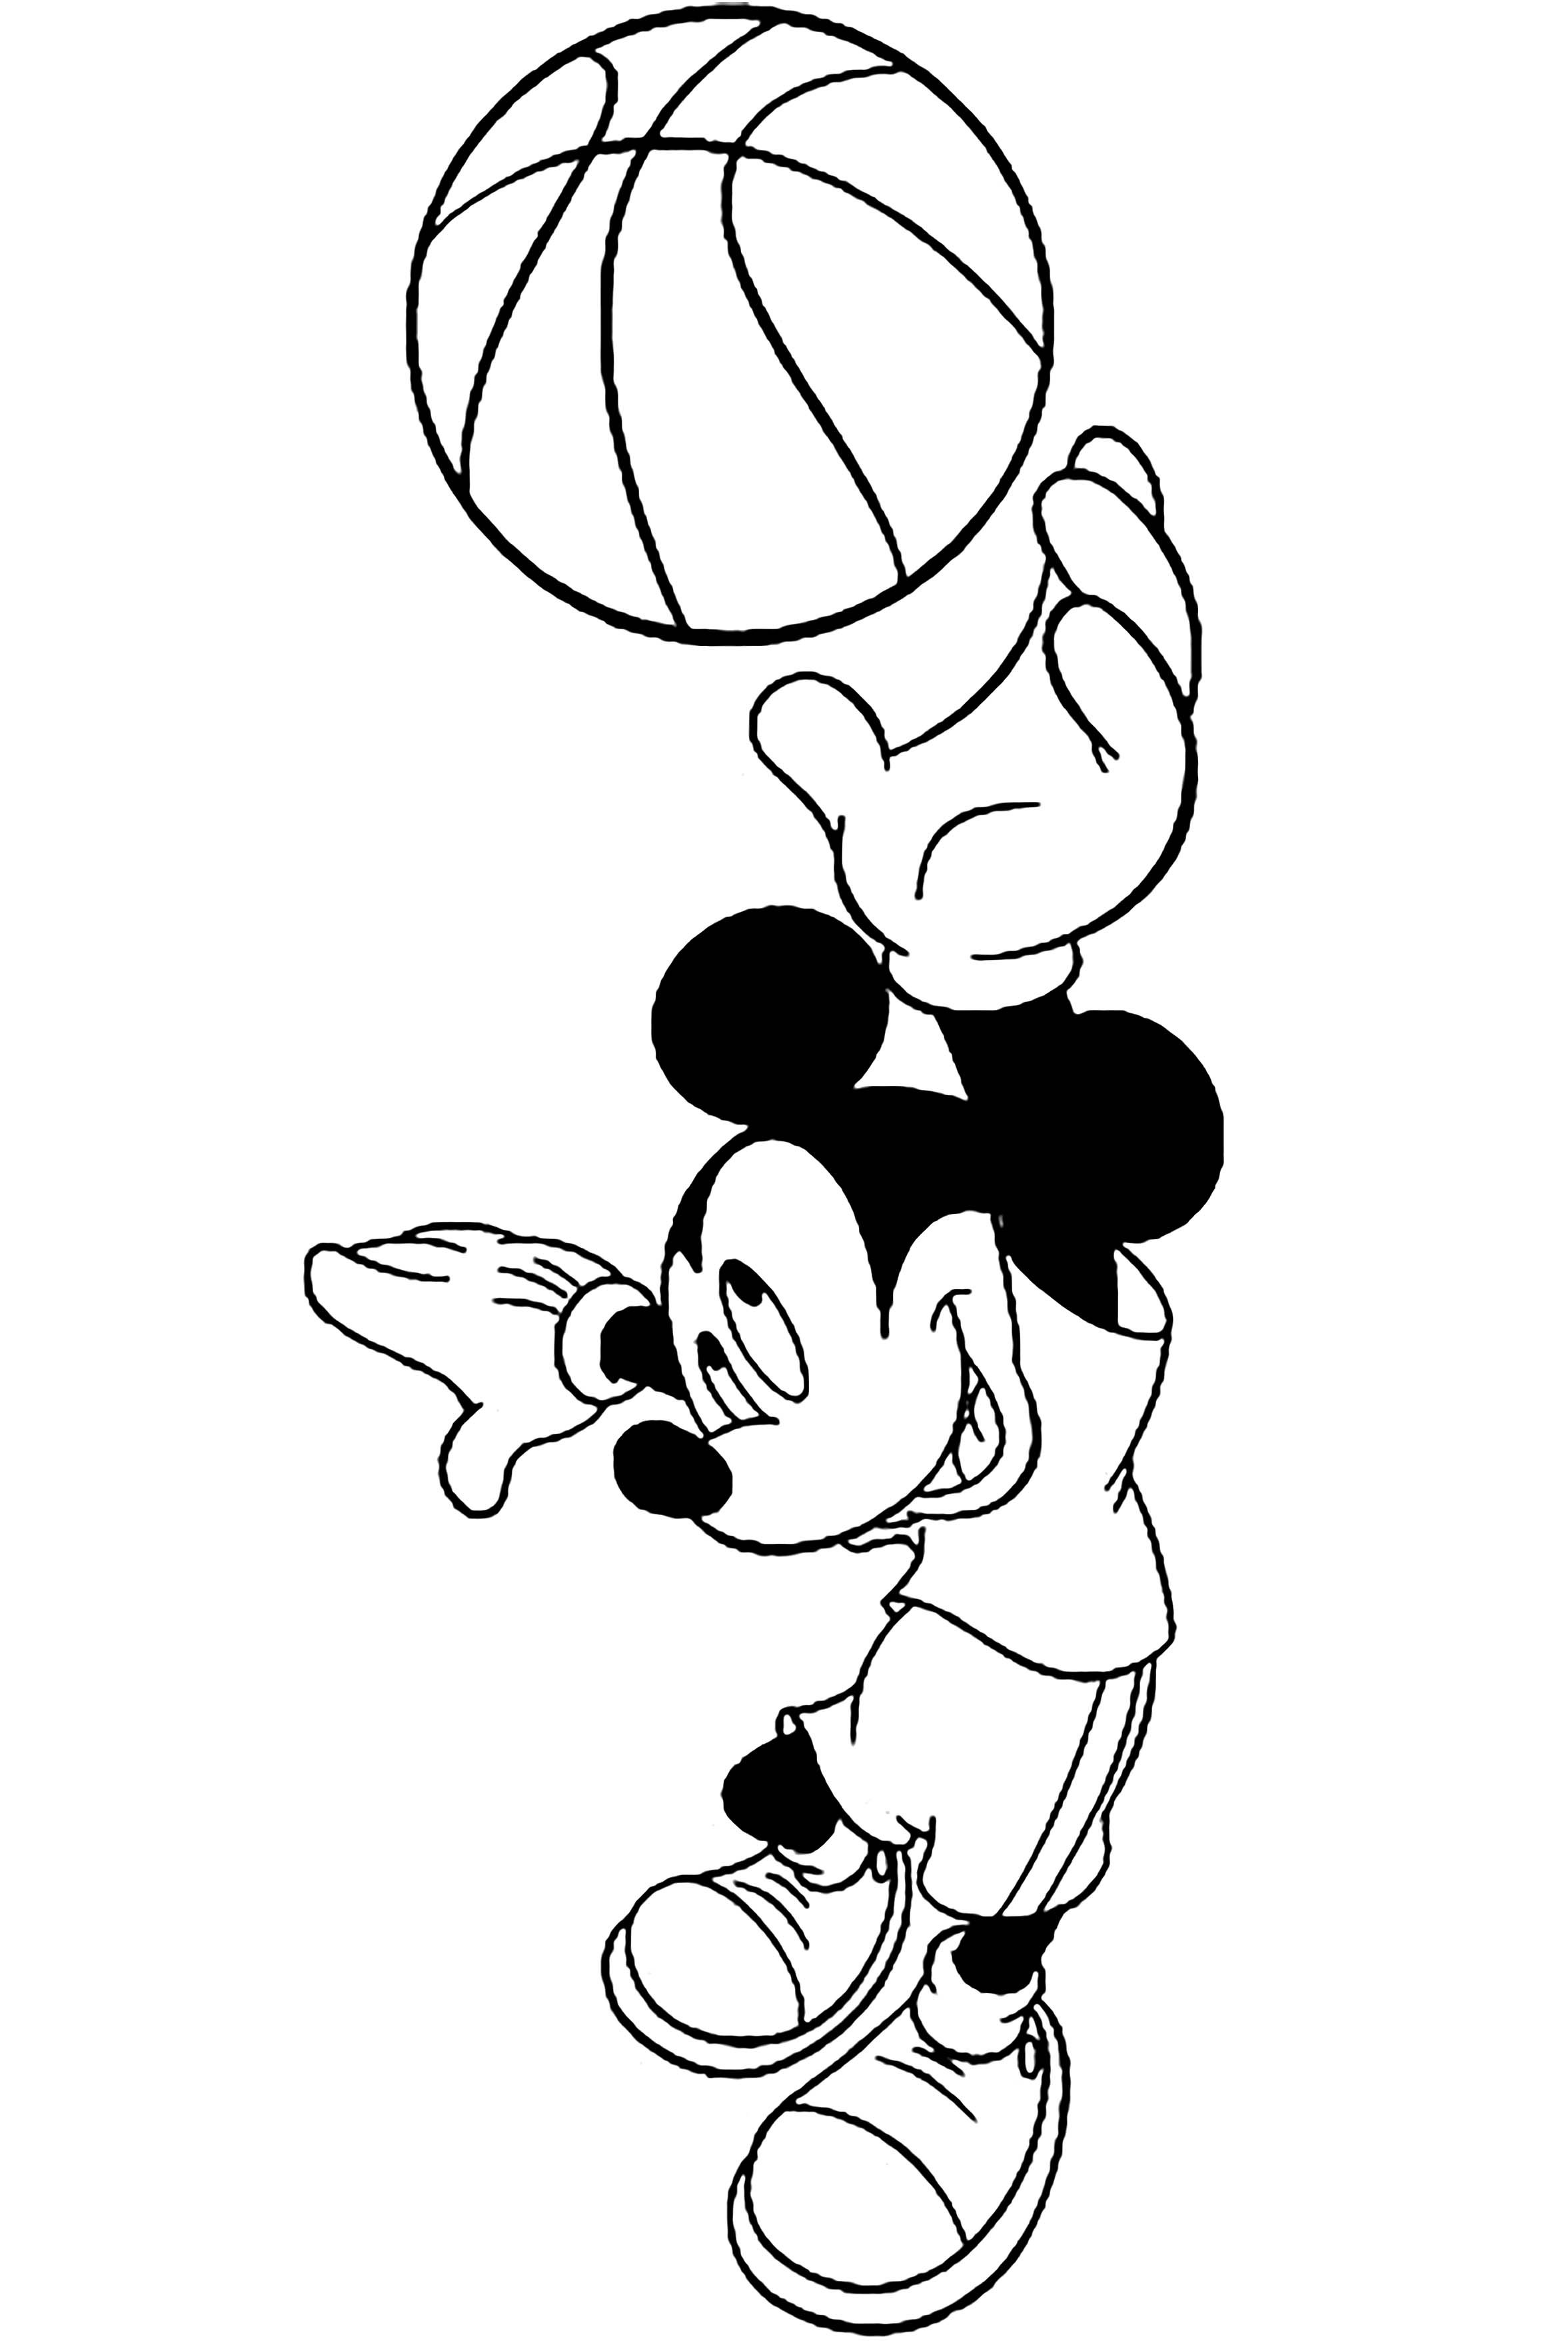 coloring pages of basketball coloring pages of basketball coloring basketball of pages